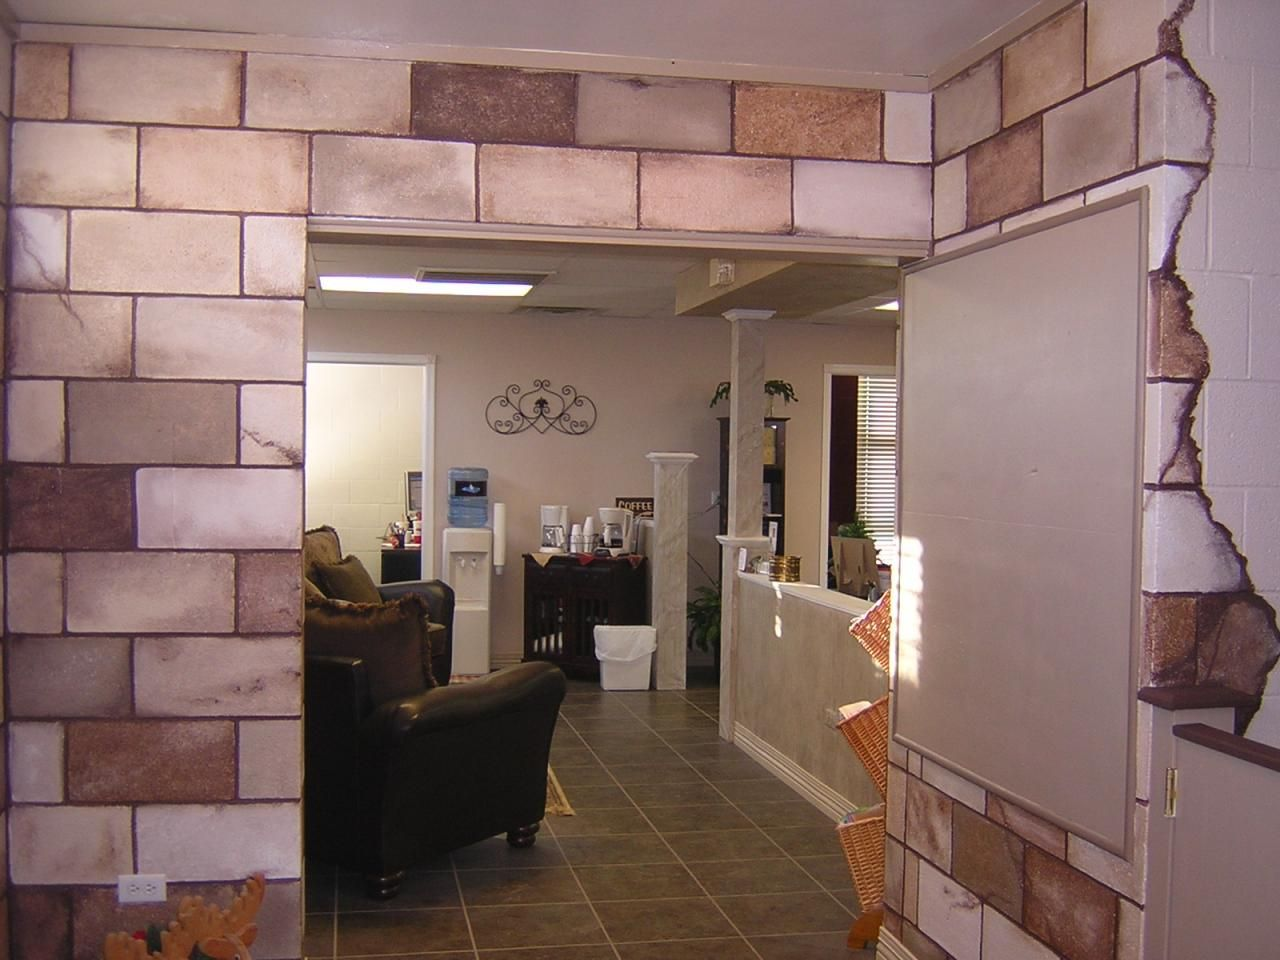 images of cinder block wall murals and painting - Google Search ...